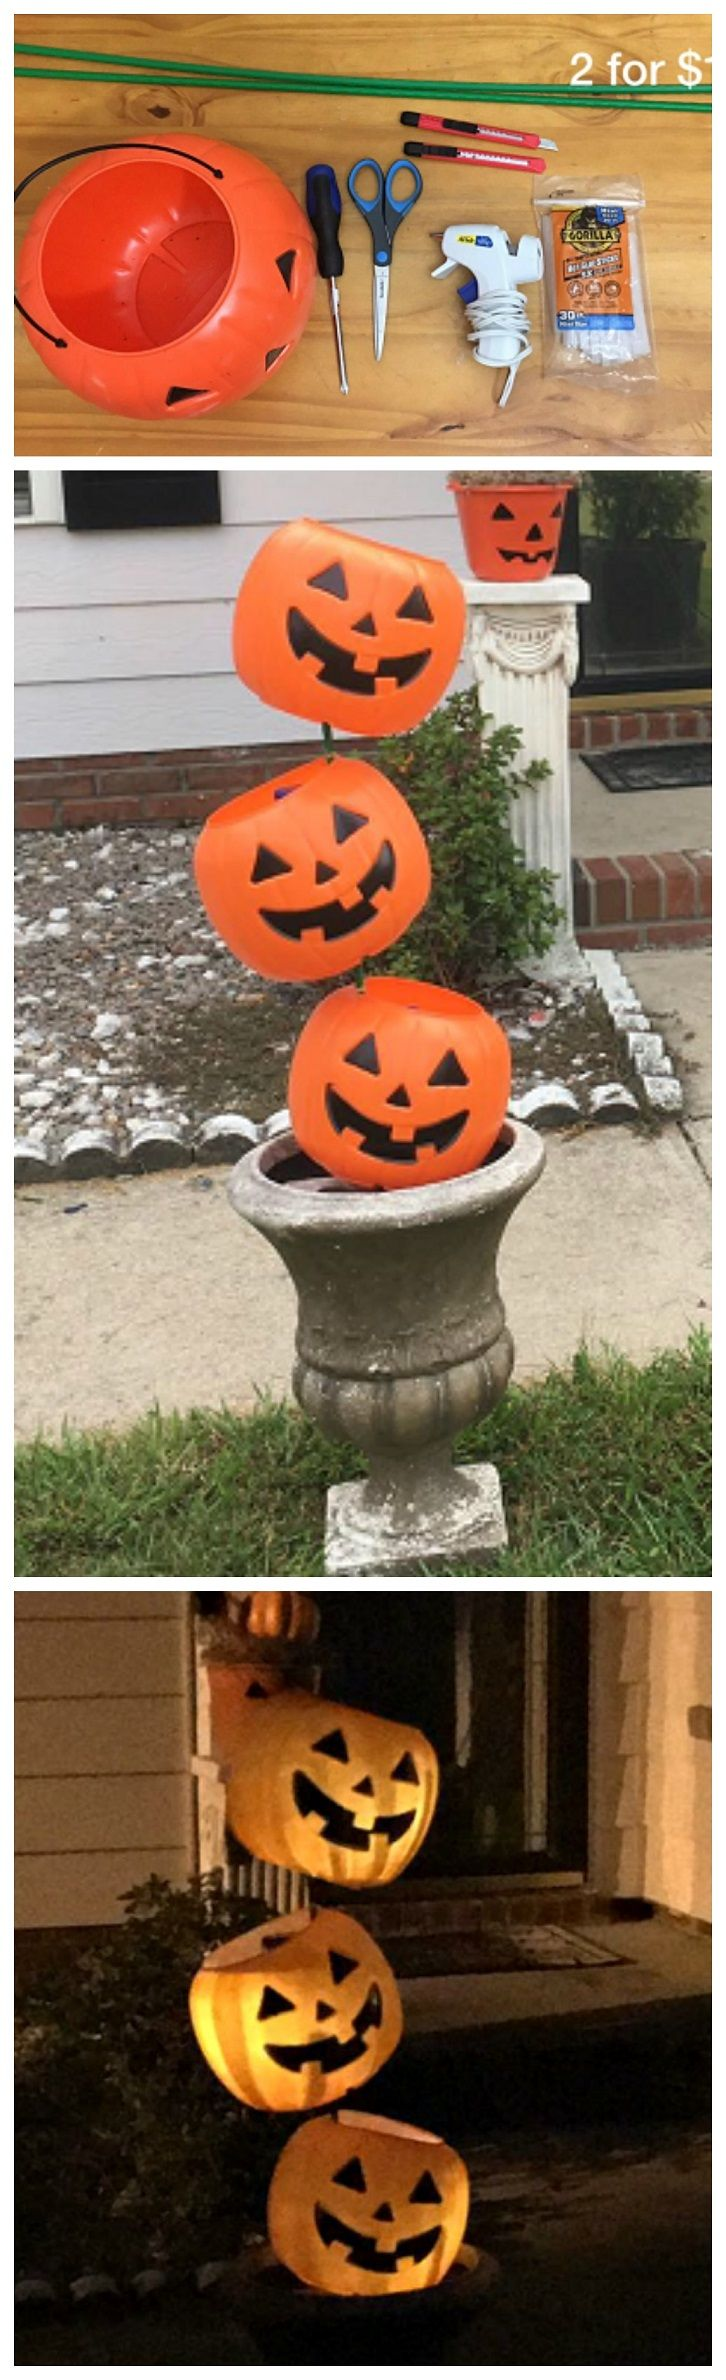 tipsy plastic pumpkin decoration homemade halloween - Home Made Halloween Decorations